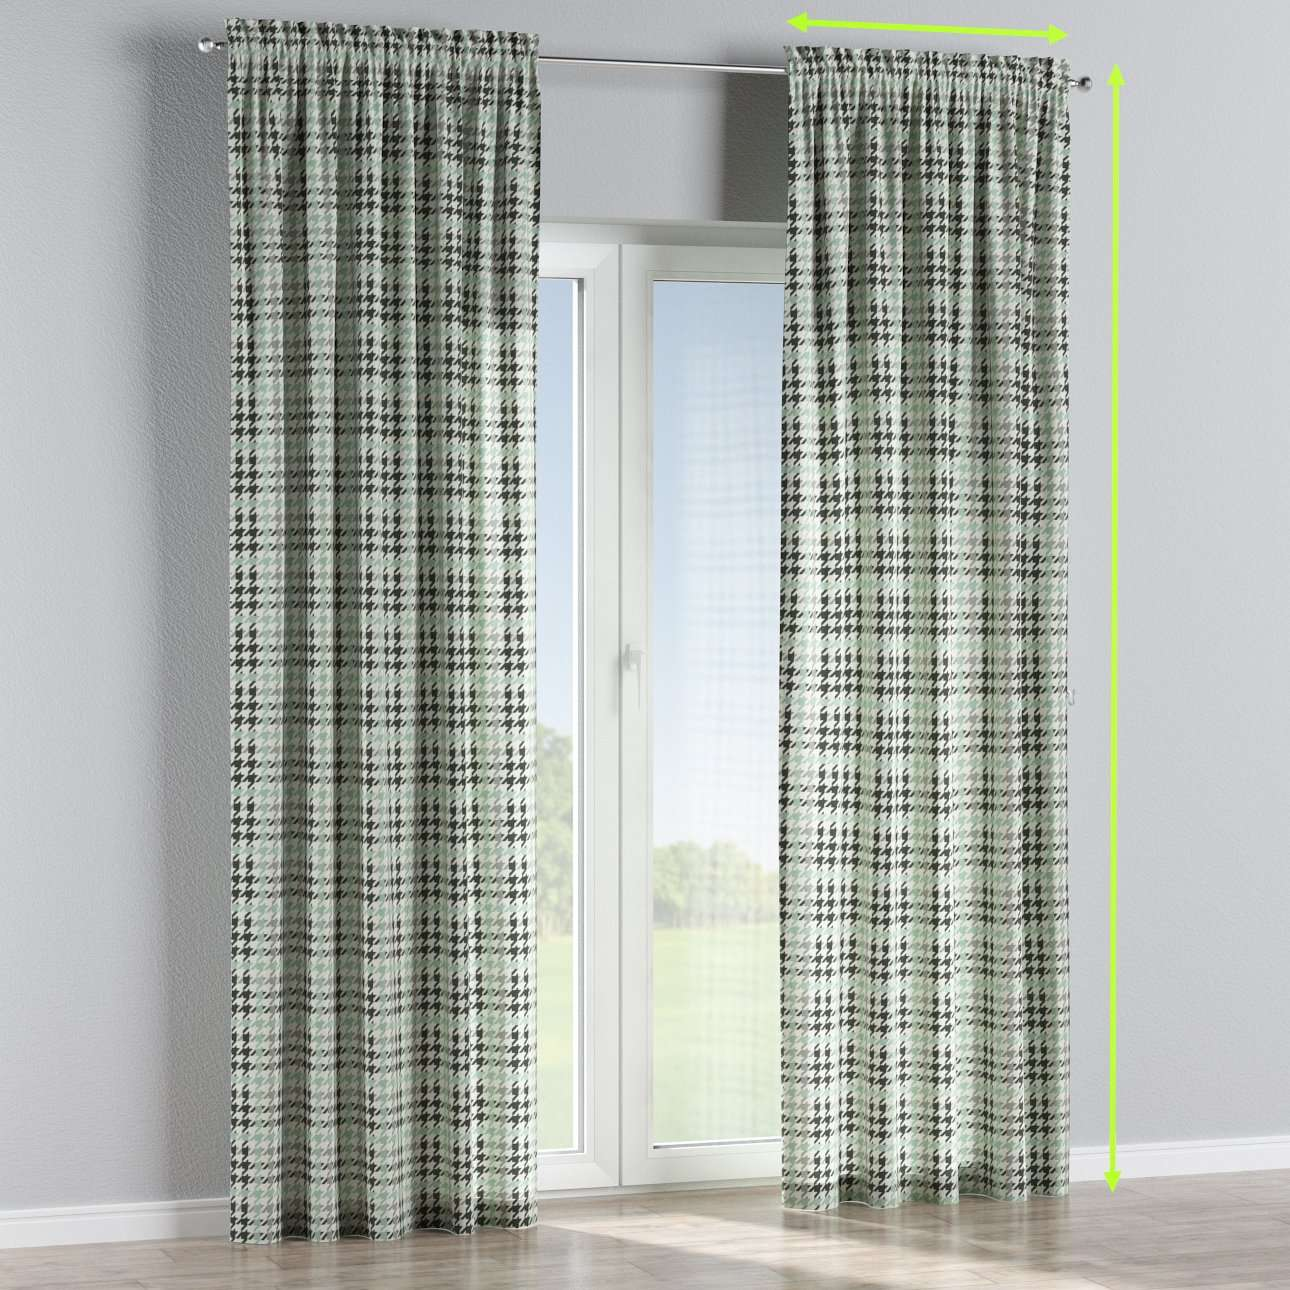 Slot and frill lined curtains in collection Brooklyn, fabric: 137-77